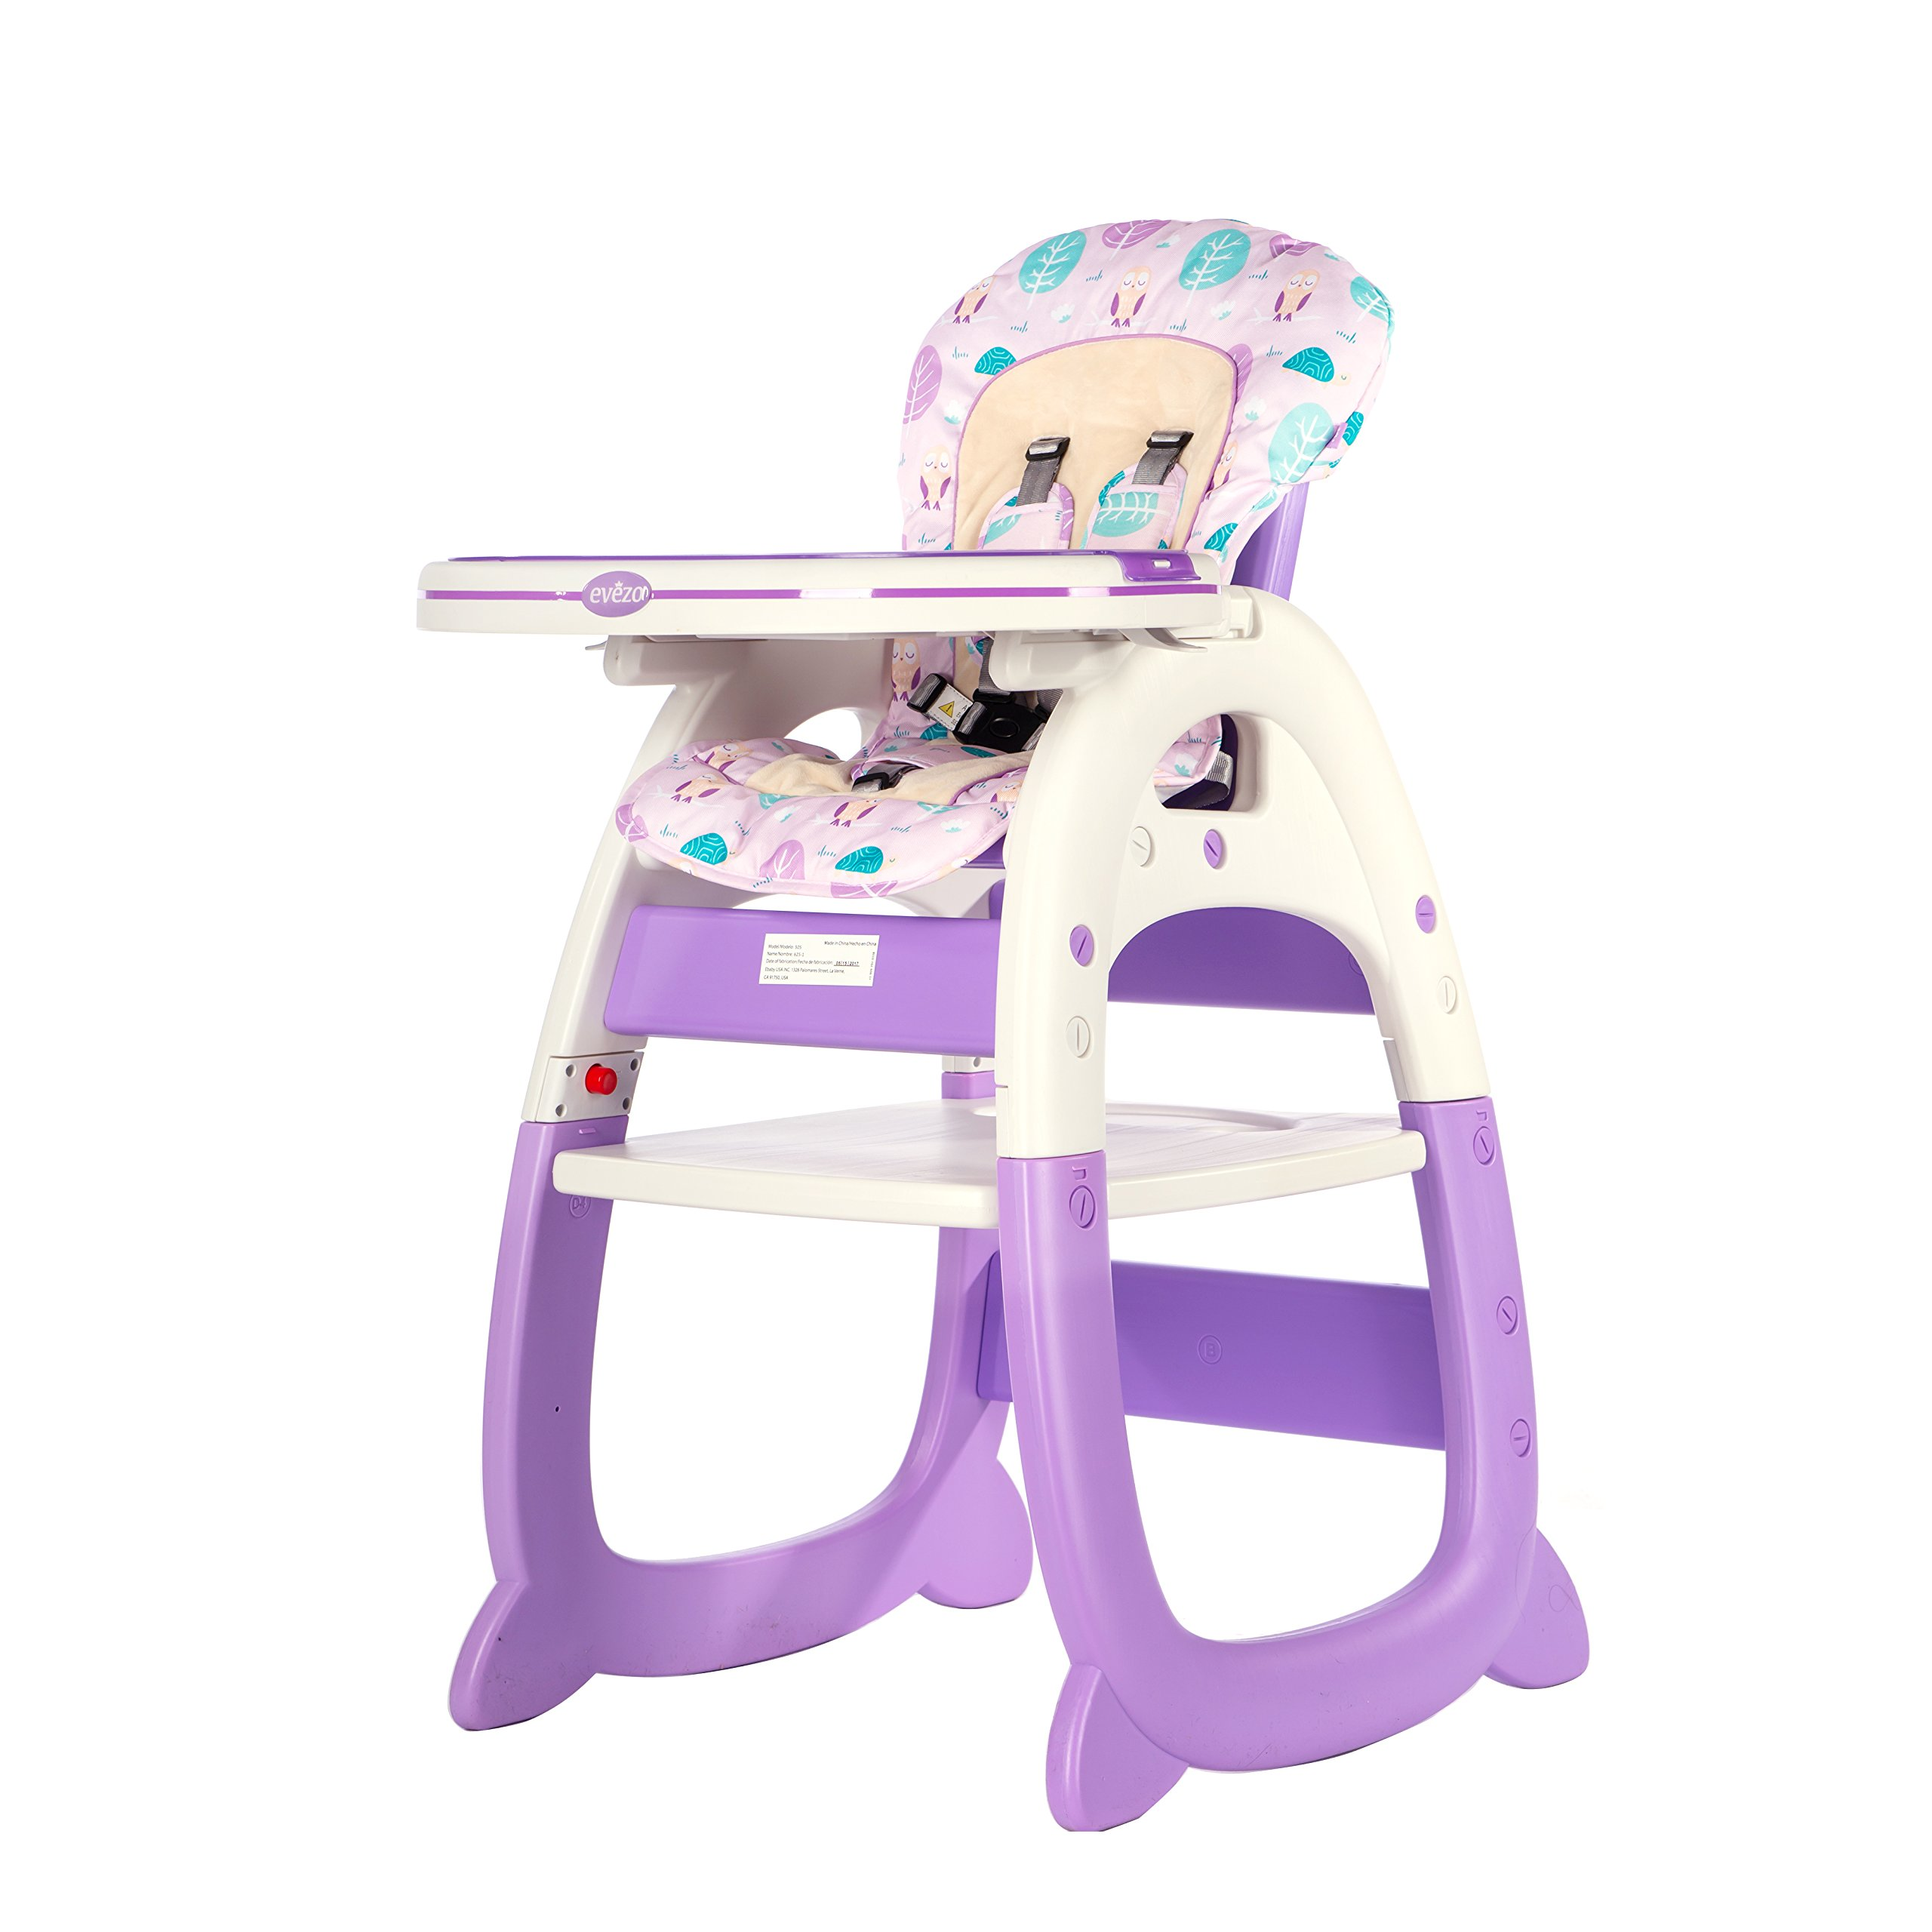 Evezo 6251A 3-in-1 Baby High Chair, Booster Seat, Desk and Chair Set, Violet